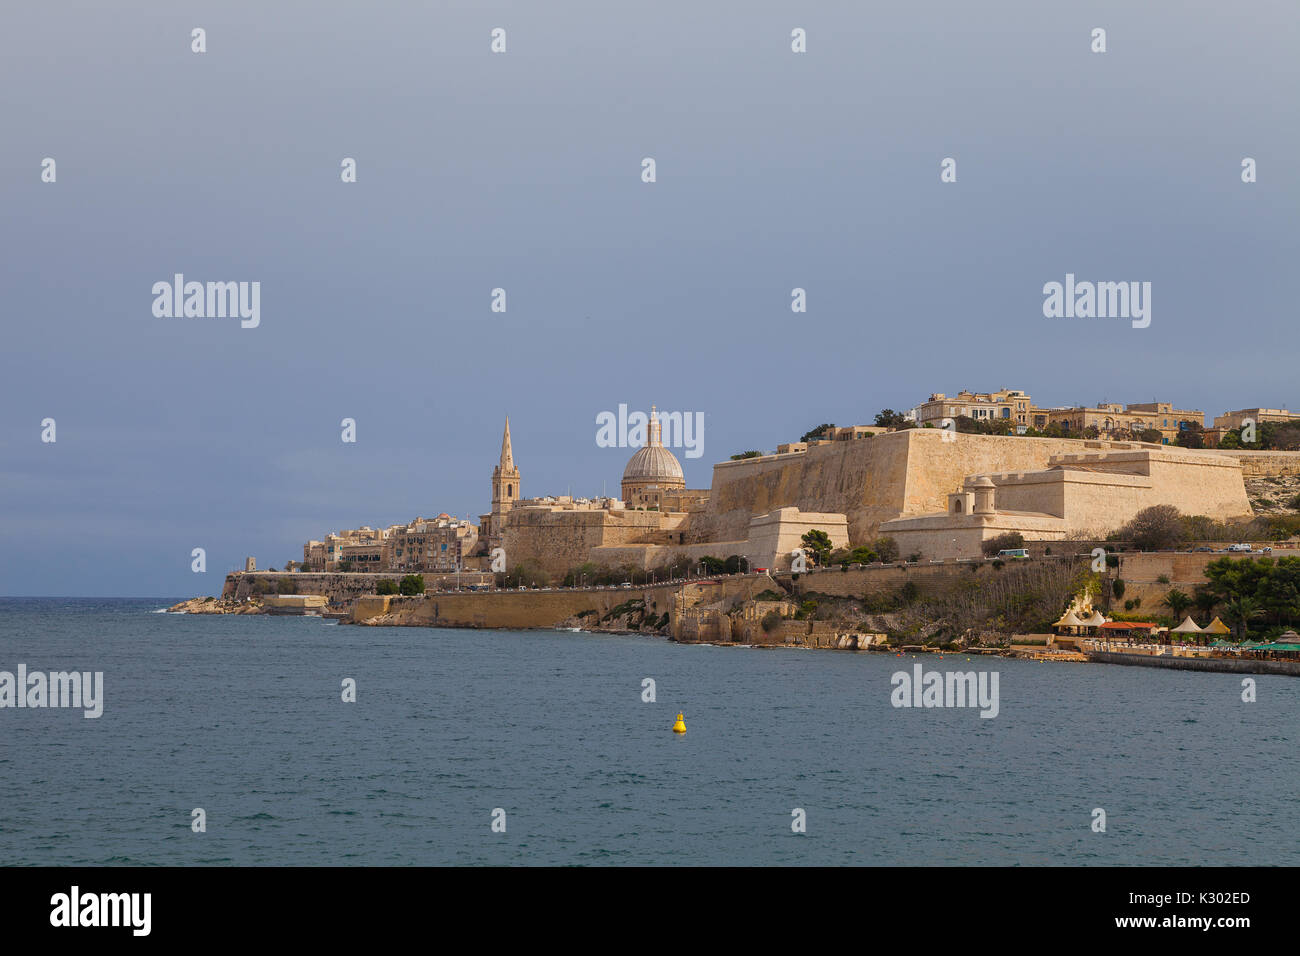 View on Valletta from the sea. - Stock Image